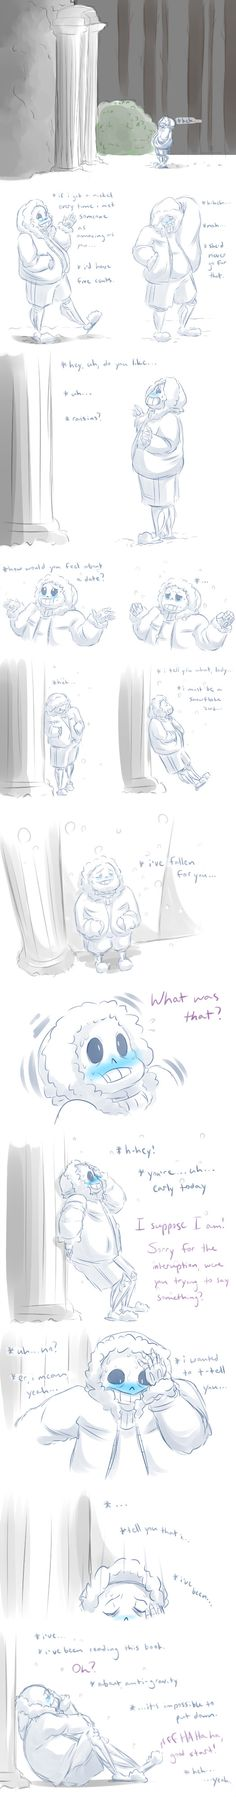 Sans and Toriel - comic - http://mod2amaryllis.tumblr.com/post/132920743022/someone-put-out-the-idea-that-sans-would-practice